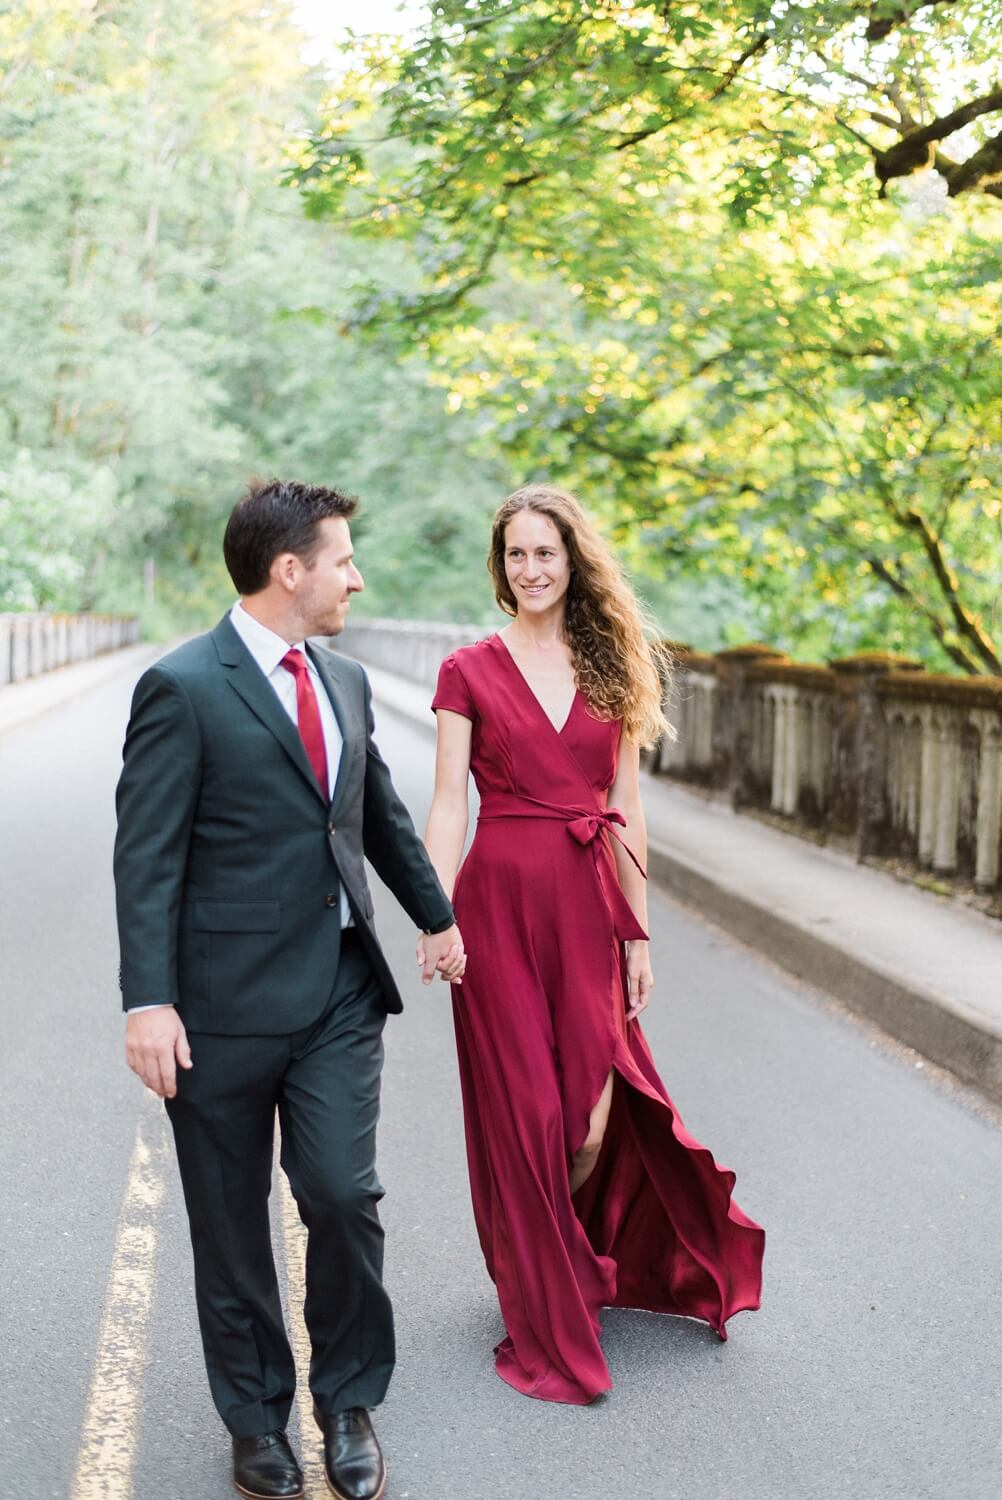 latourel-waterfall-engagement-photos-columbia-river-gorge-portland-oregon-234_cr.jpg